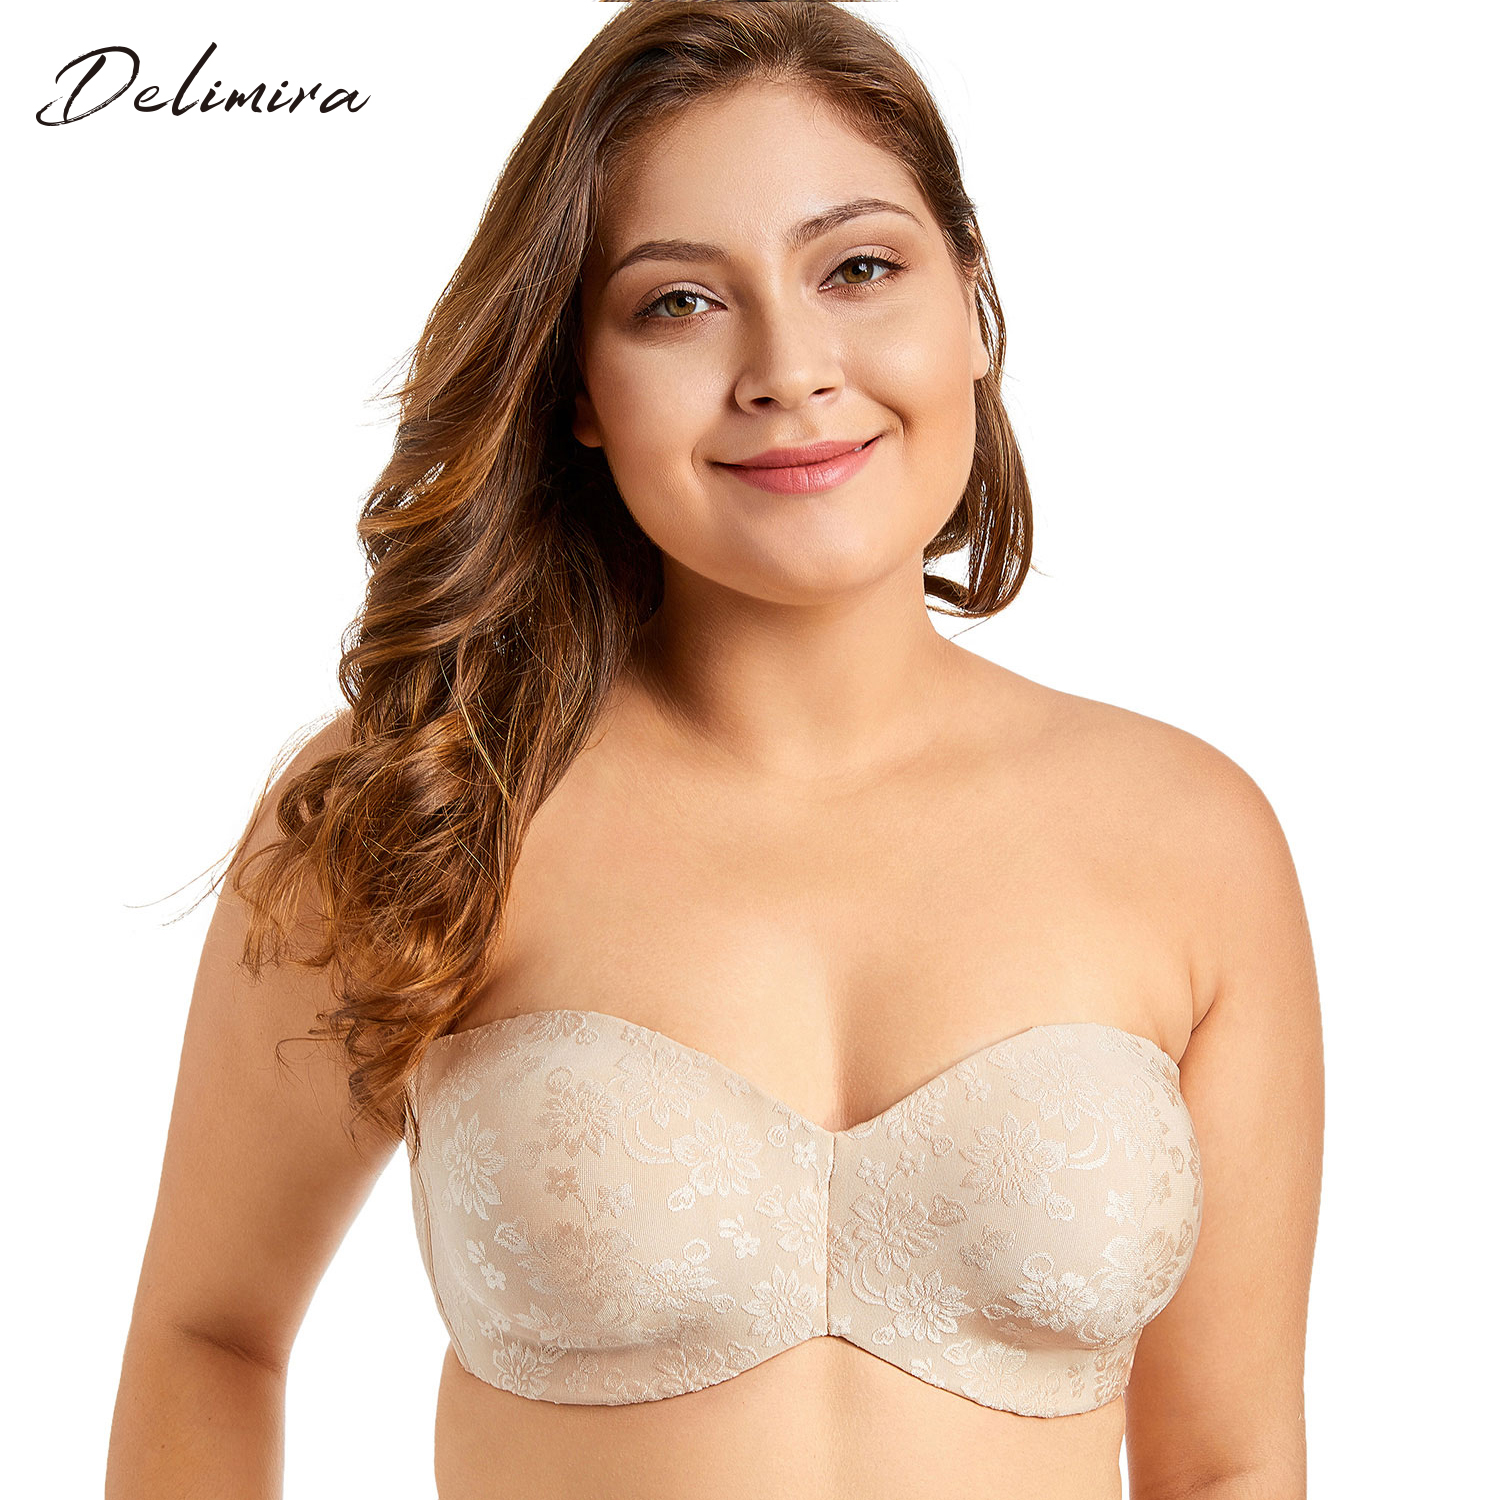 5cd22d3a46342 Aliexpress.com   Buy Delimira Women s Floral Jacquard Multitway Underwire  Non padded Minimizer Strapless Bra from Reliable Bras suppliers on DELIMIRA  ...